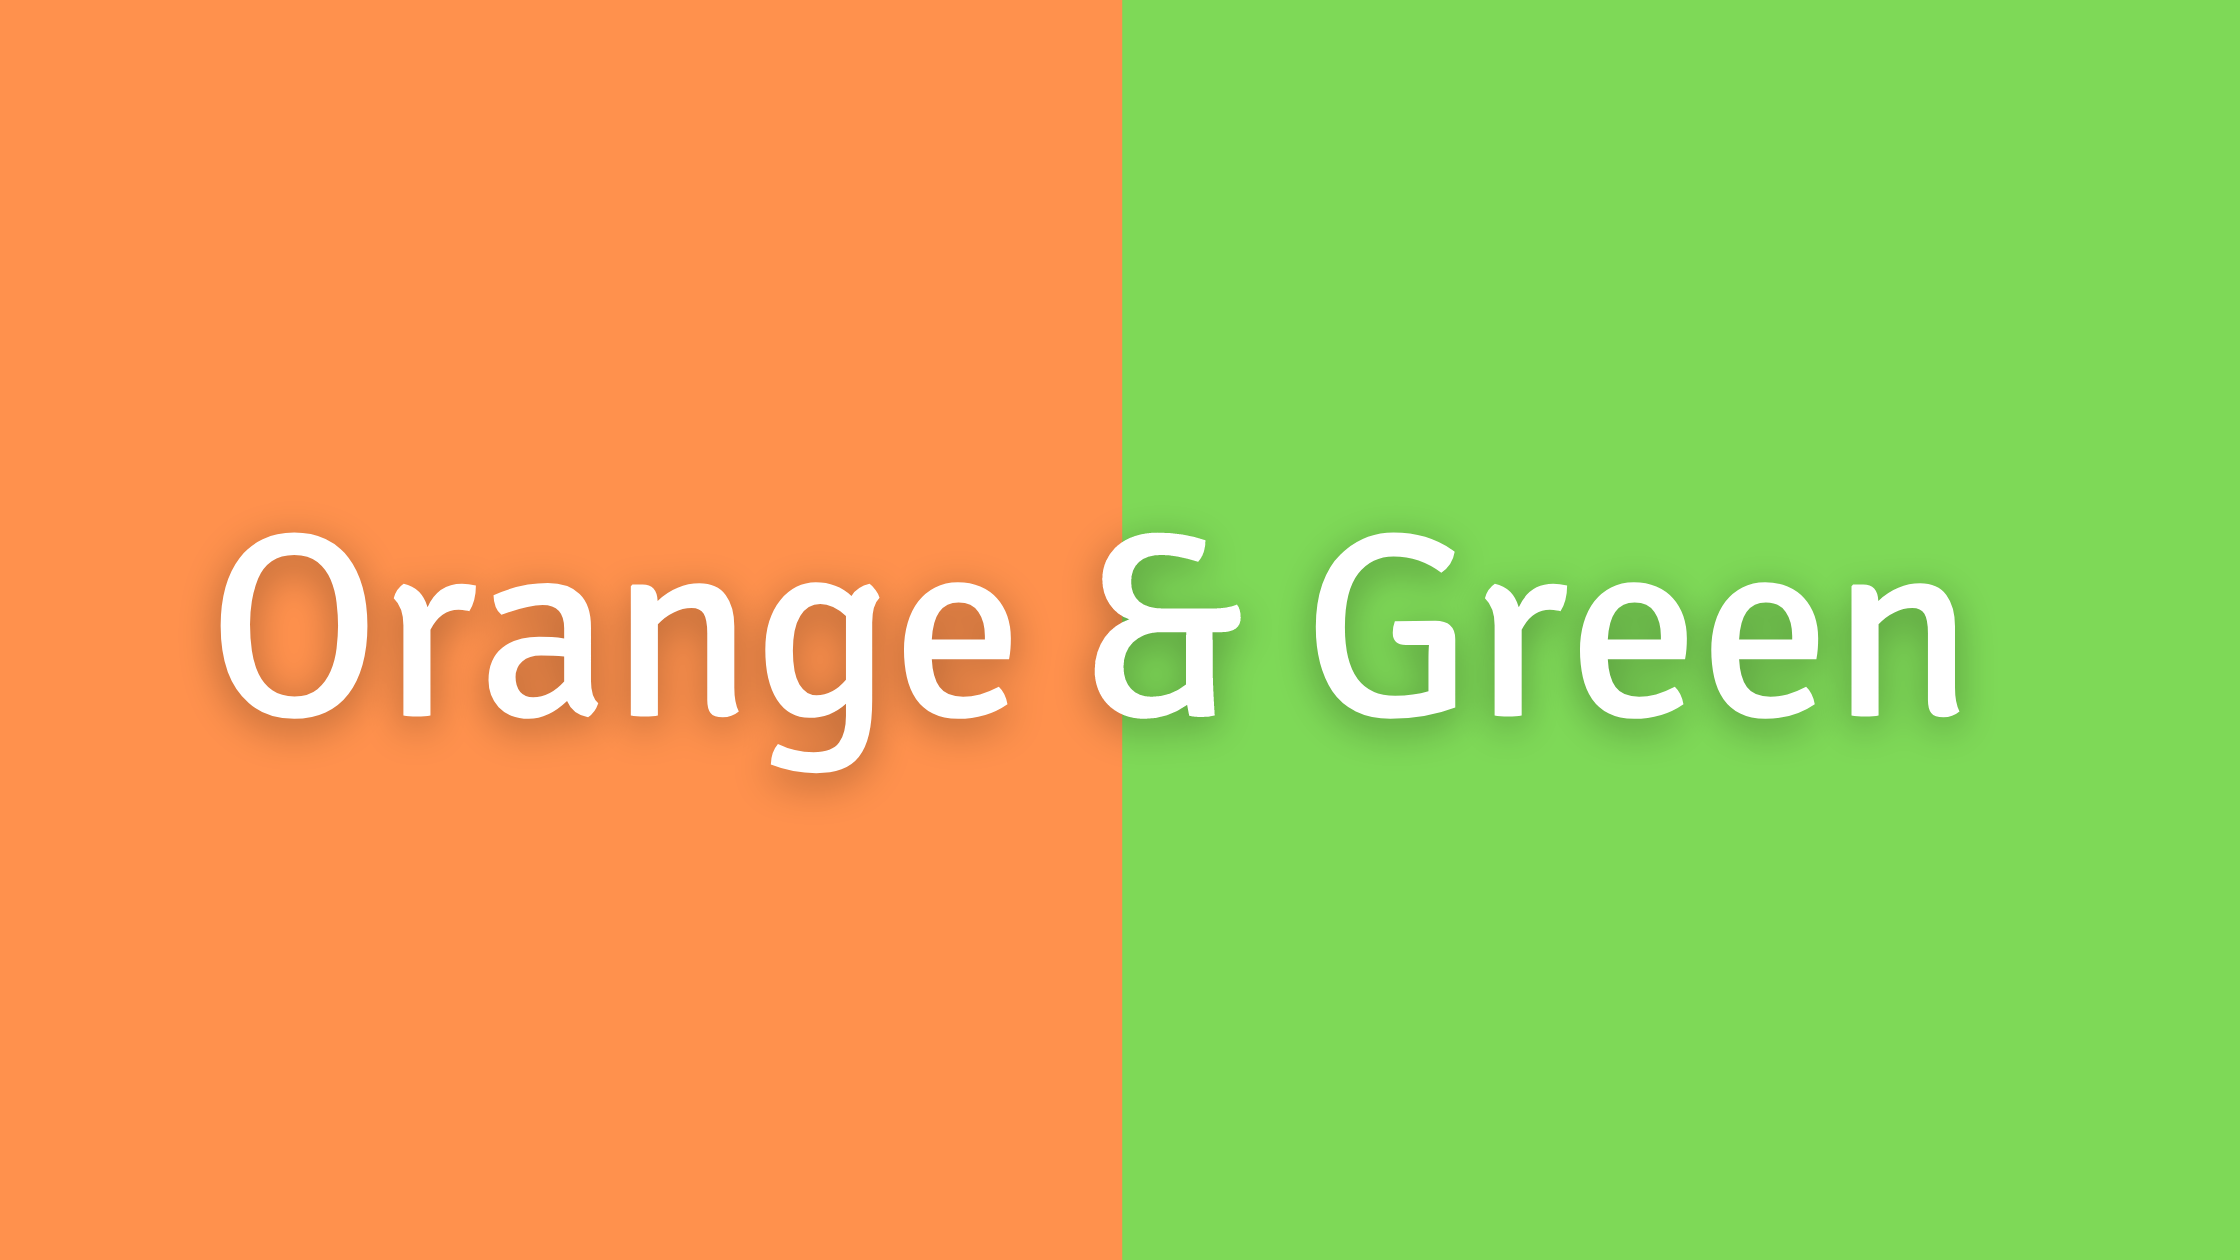 Green, Yellow, and Orange Color Combos to Avoid: Green and Orange